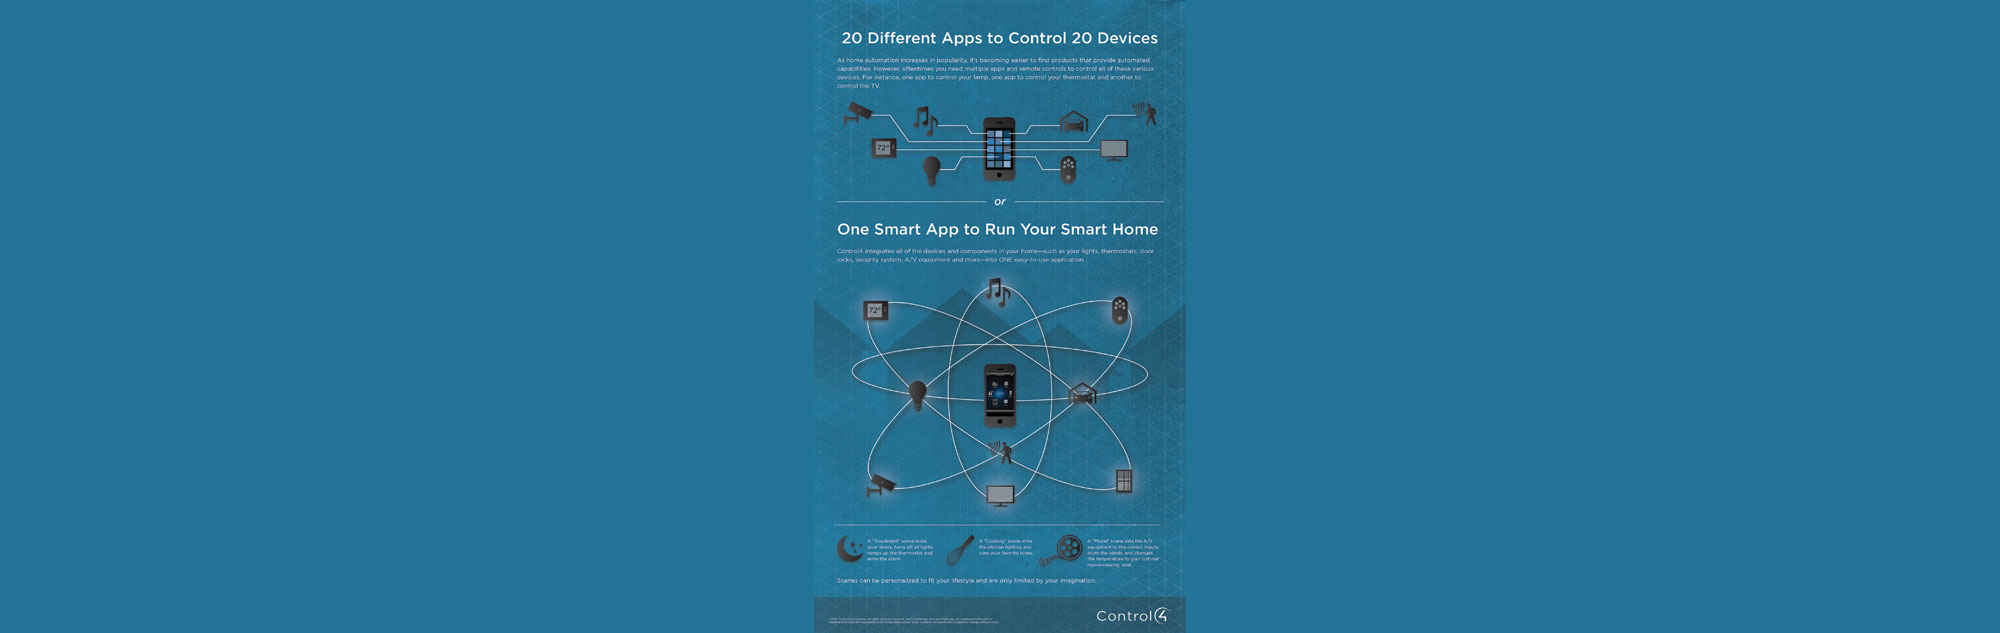 Poster, 20 Different Apps to Control 20 Devices